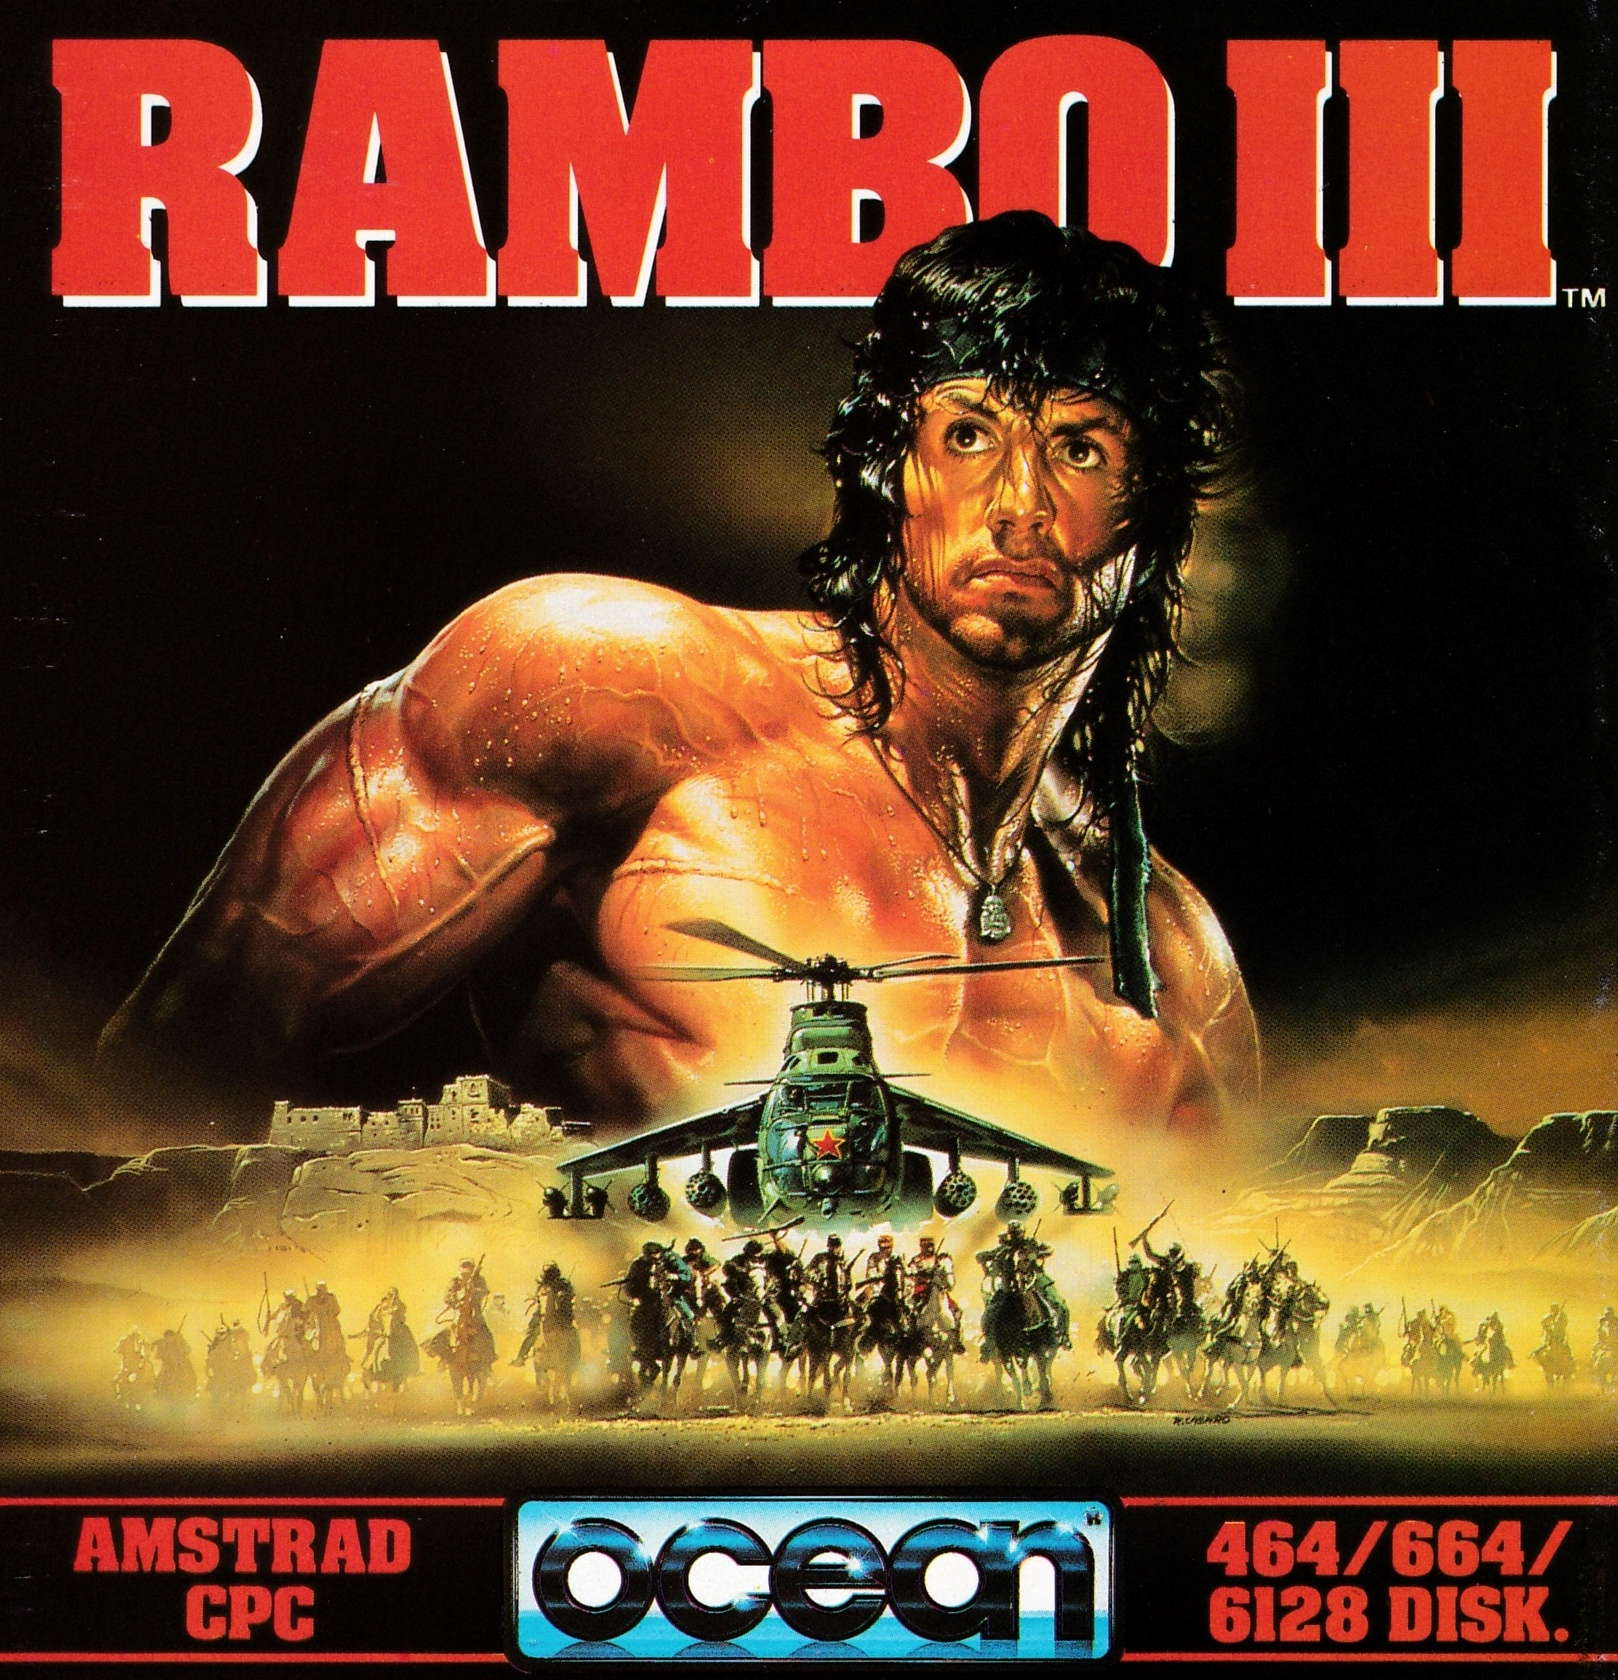 cover of the Amstrad CPC game Rambo III  by GameBase CPC